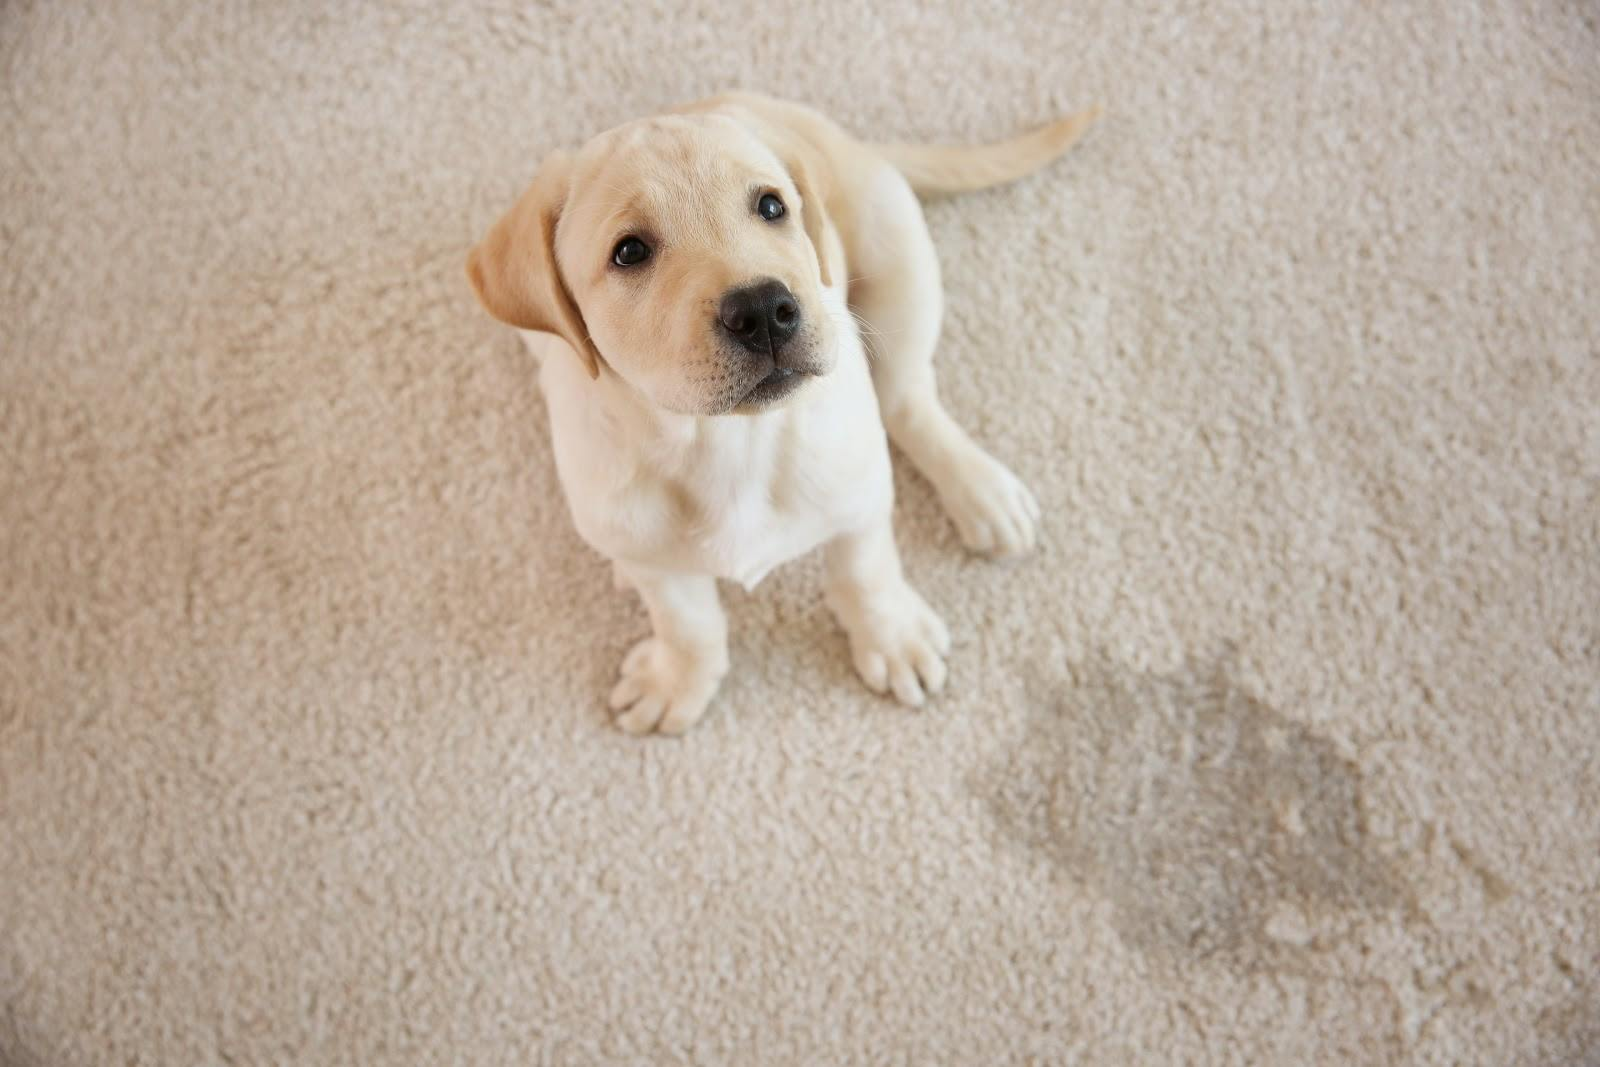 small dog sitting next to a urine stain on carpet